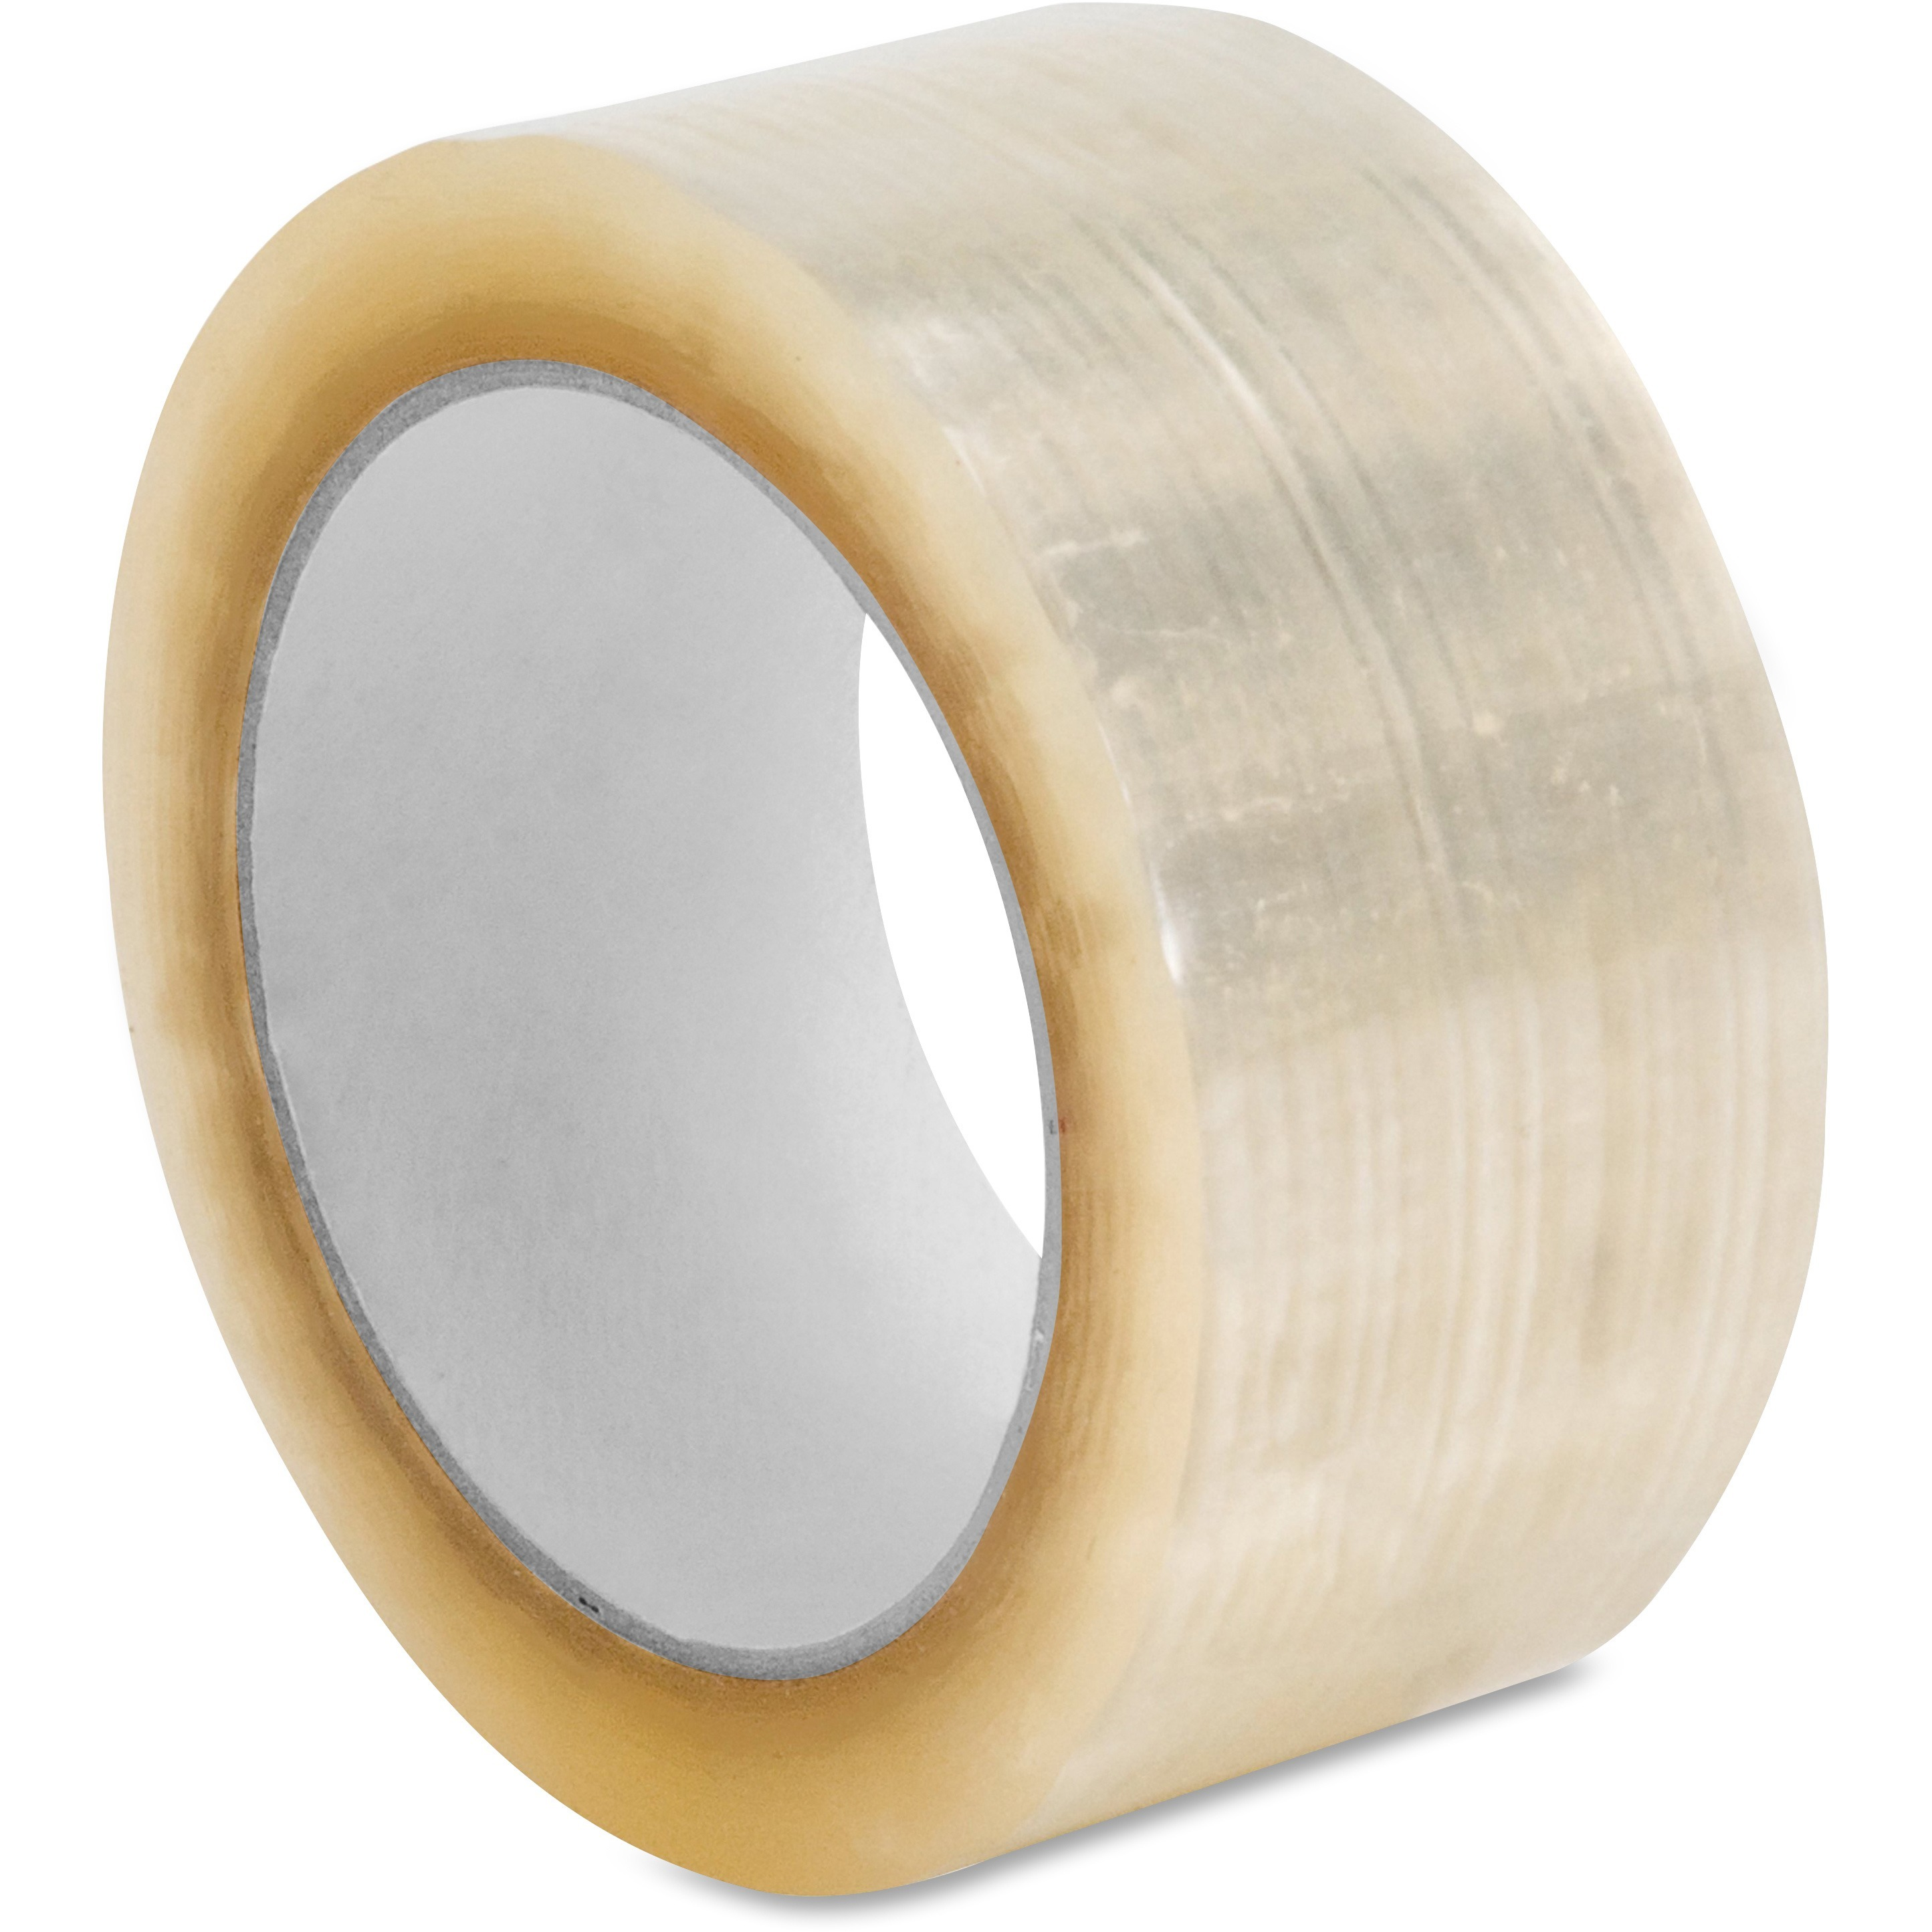 Sparco, SPR74955, 3.0mil Hot-melt Sealing Tape, 36 / Carton, Clear